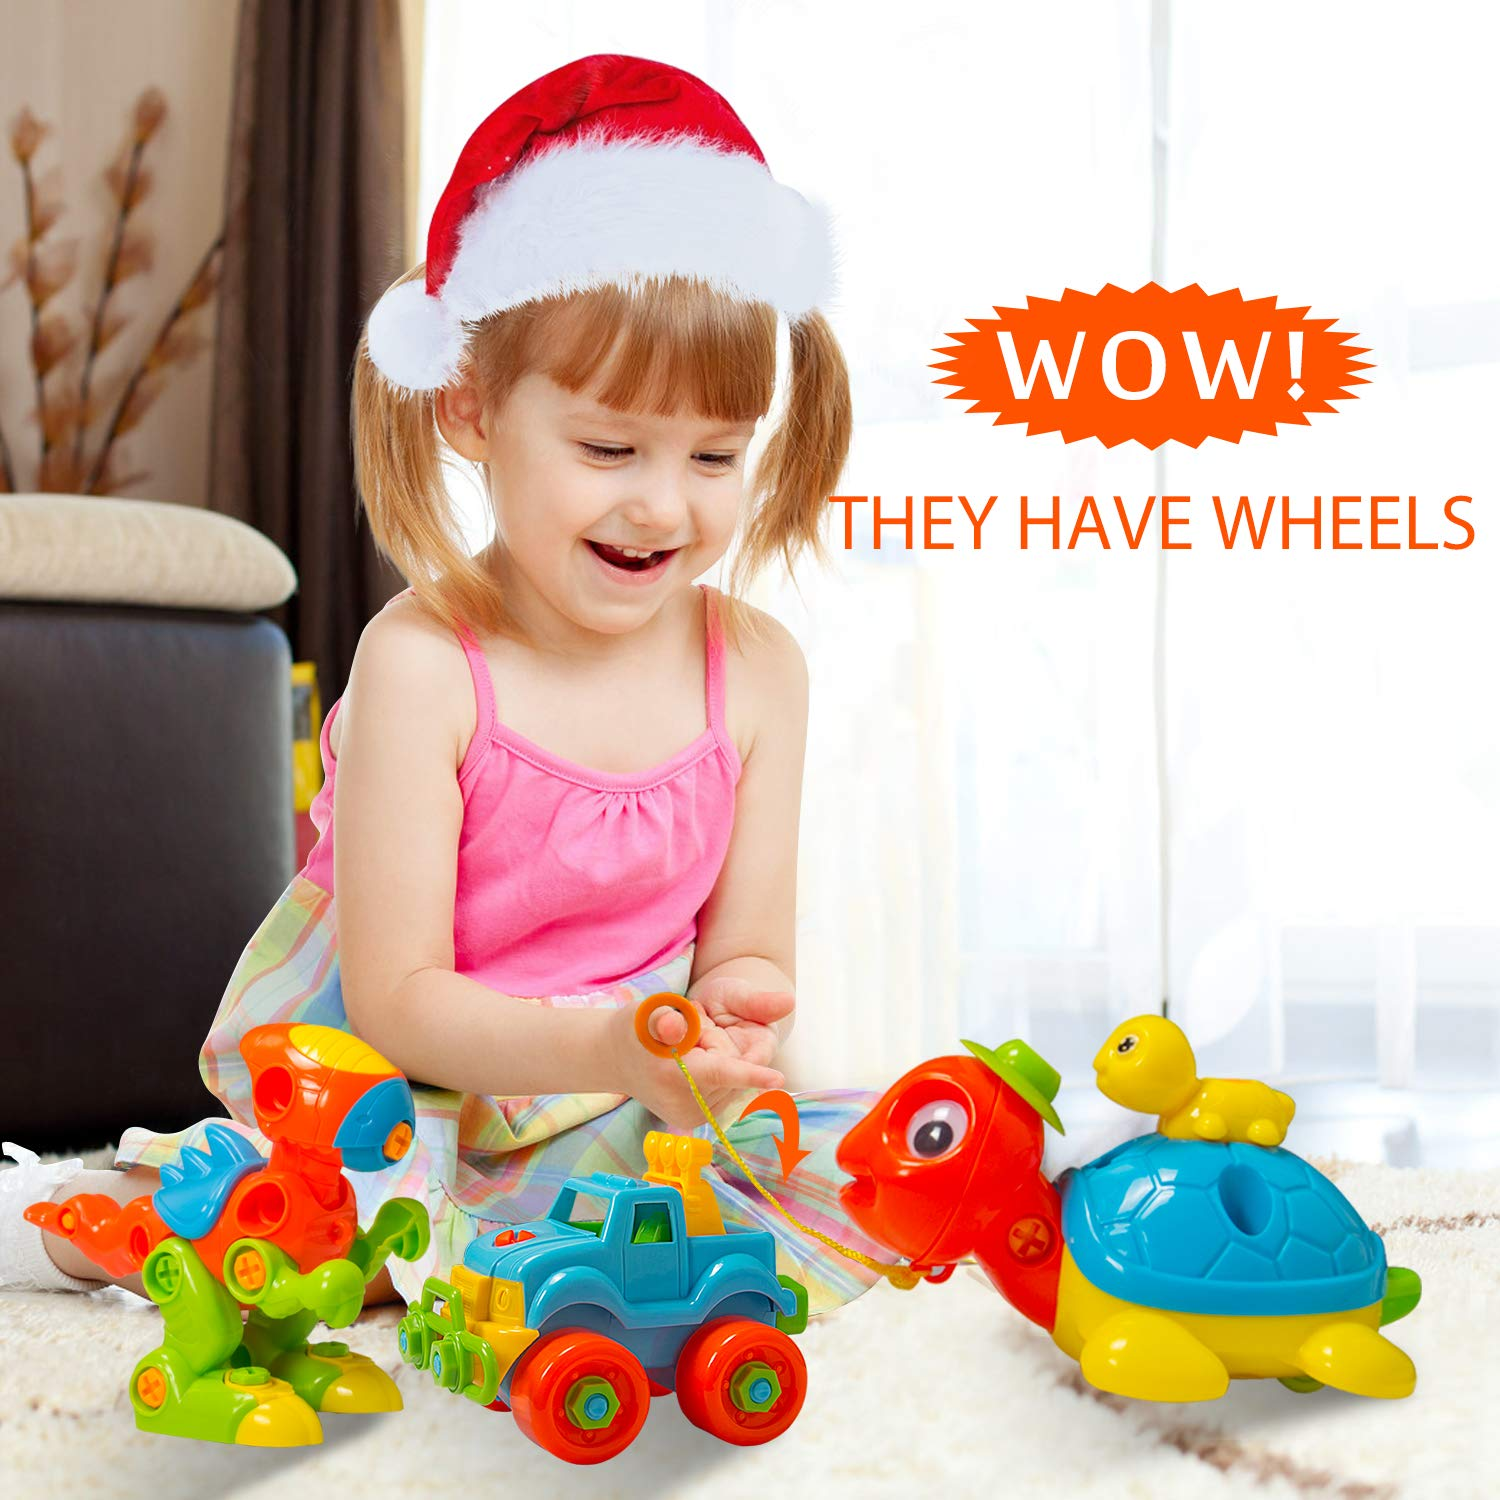 MARKKEER Dinosaur Toys Take Apart Toys with Tools Car,Turtle,Dinosaur Take Apart Toy Sets,STEM Learning Take Apart Fun Construction Engineering Building Toys for Boy Girl Toddler Best Toy Gift